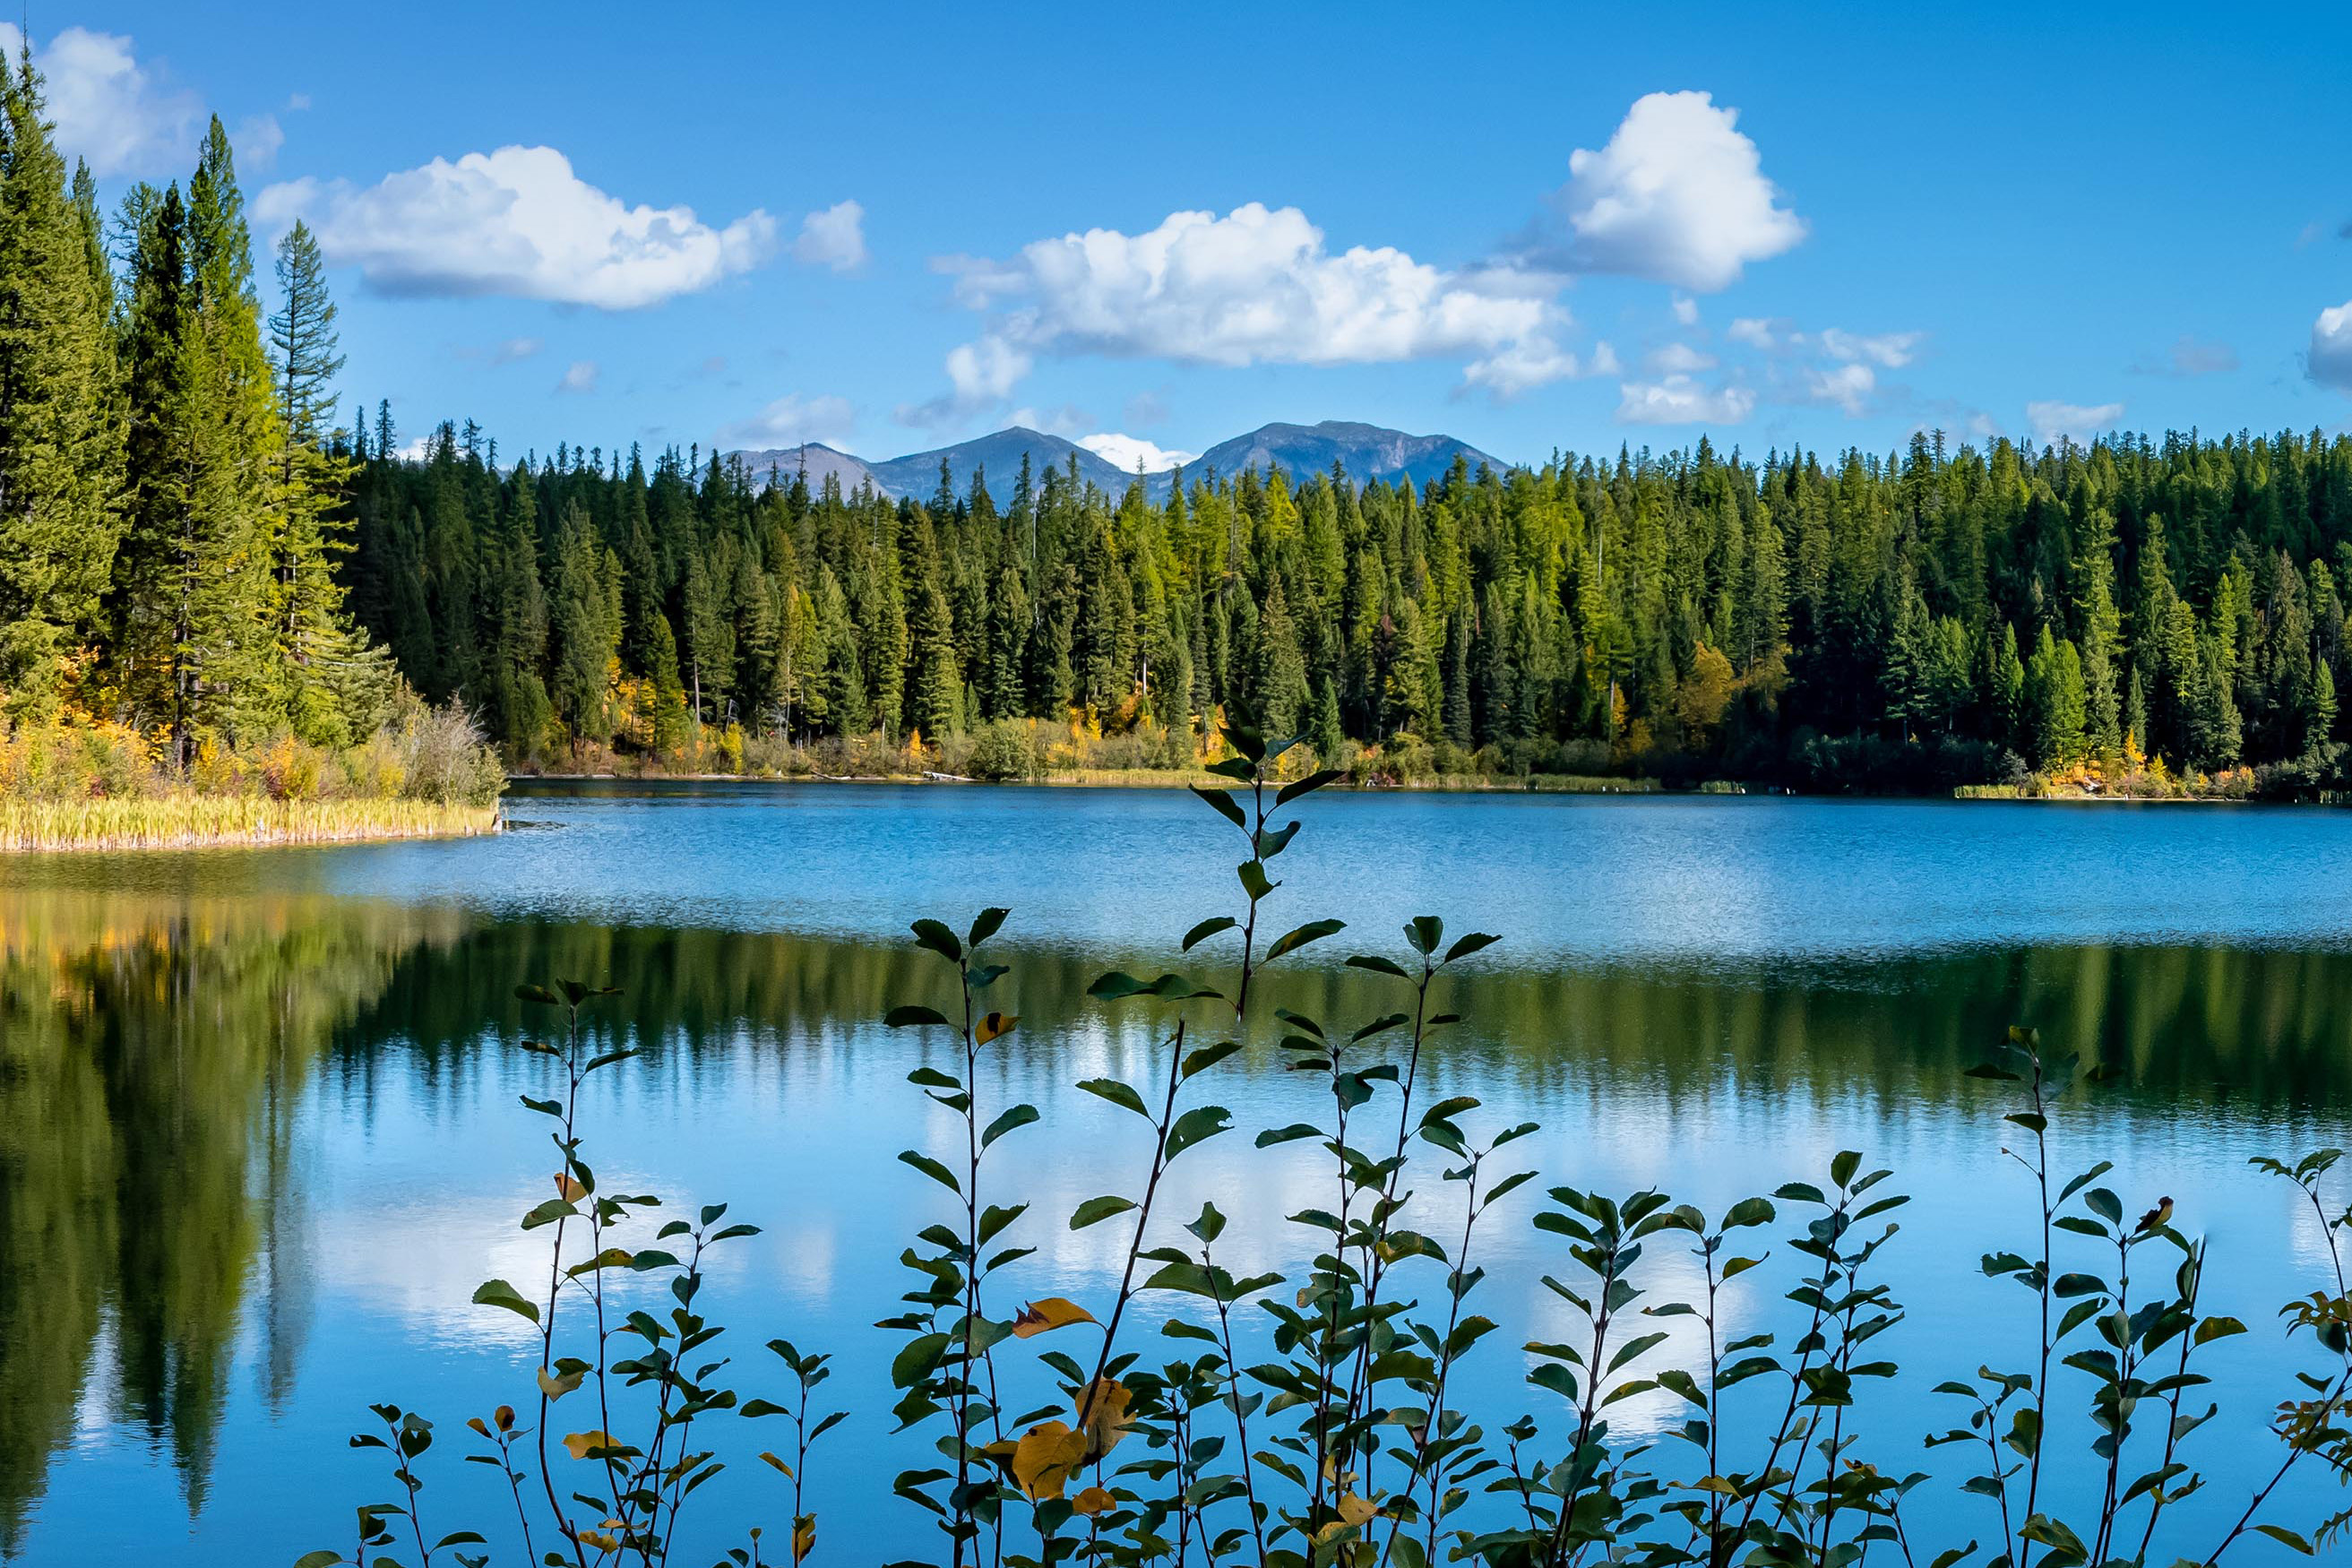 A pond near in the Rocky Mountains of Montana that is reflecting the trees around it.